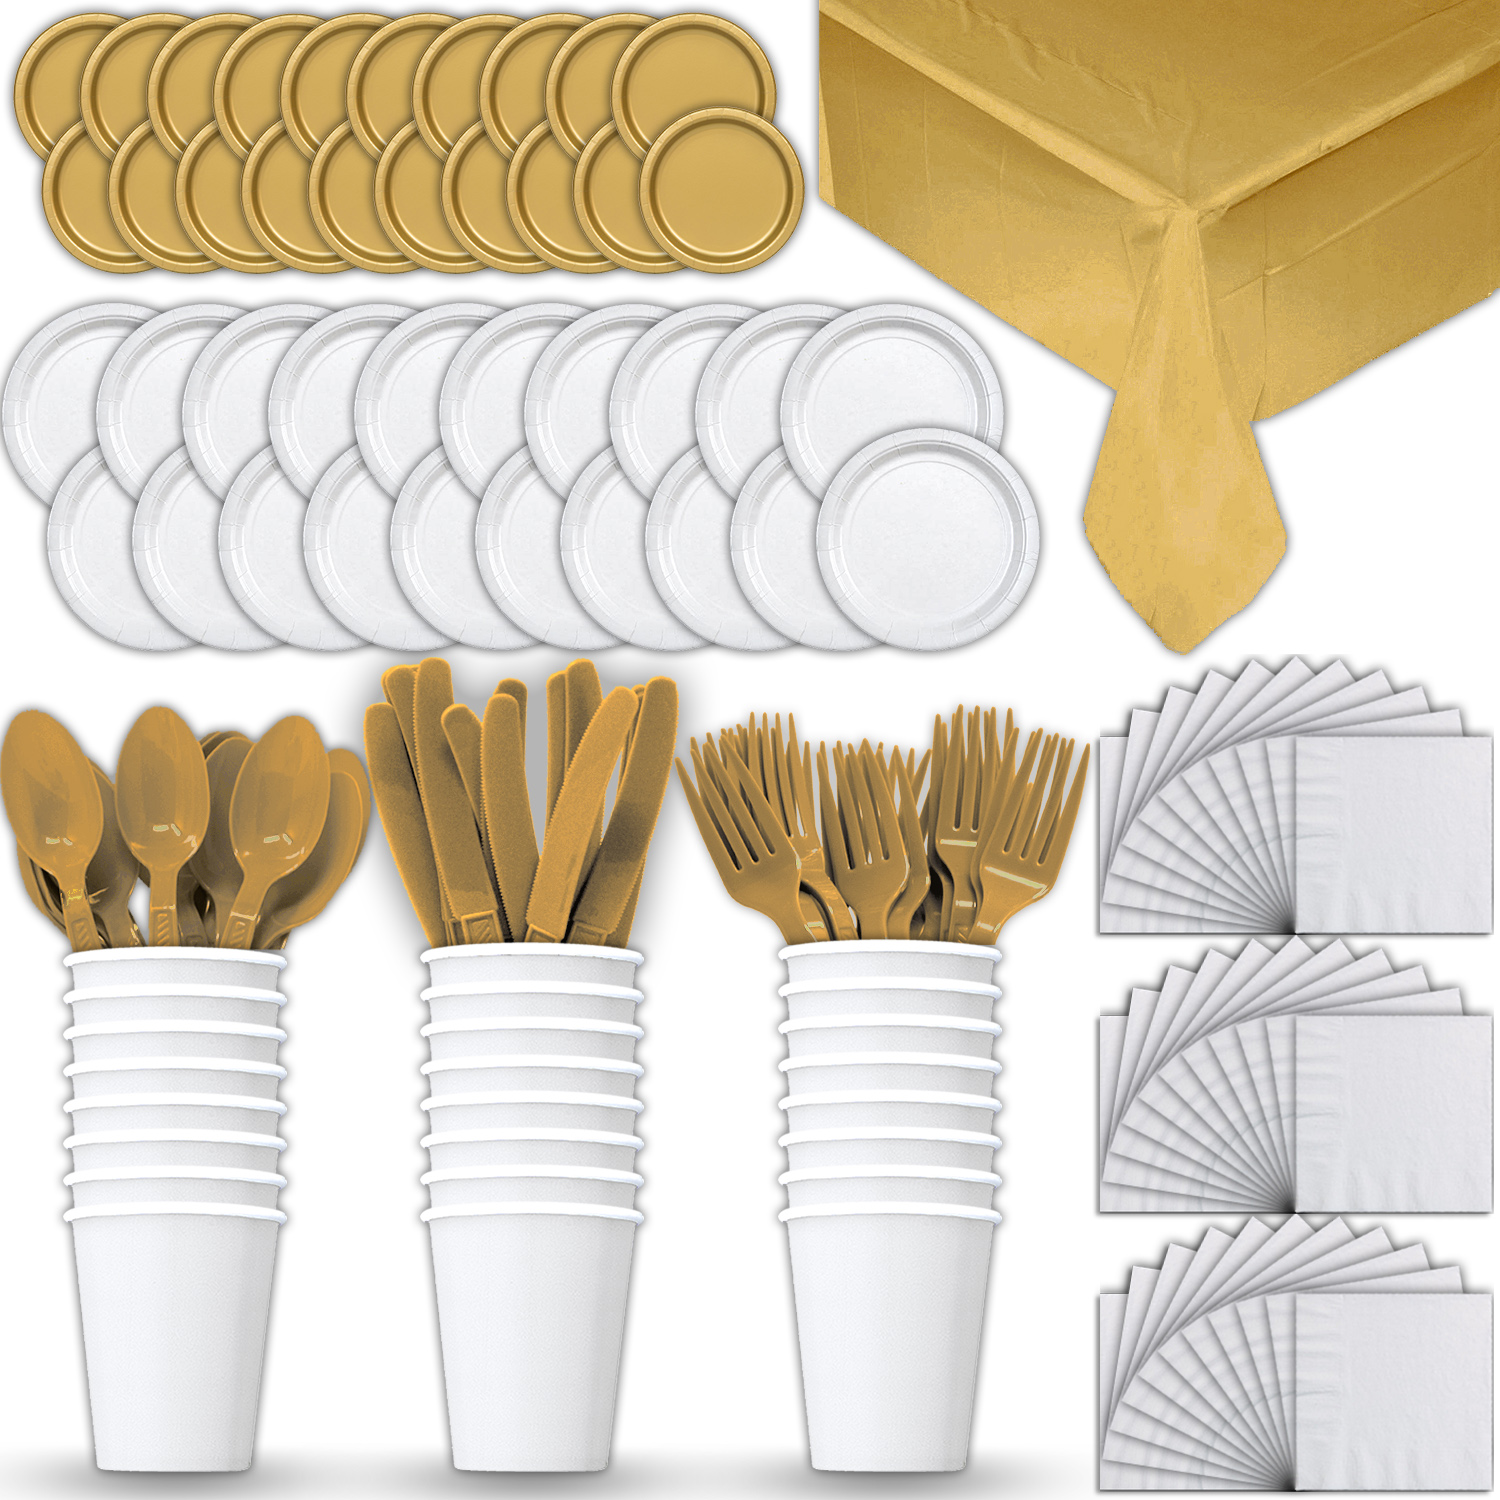 Paper Tableware Set for 24 - White & Gold - Dinner and Dessert Plates, Cups, Napkins, Cutlery (Spoons, Forks, Knives), and Tablecloths - Full Two-Tone Party Supplies Pack